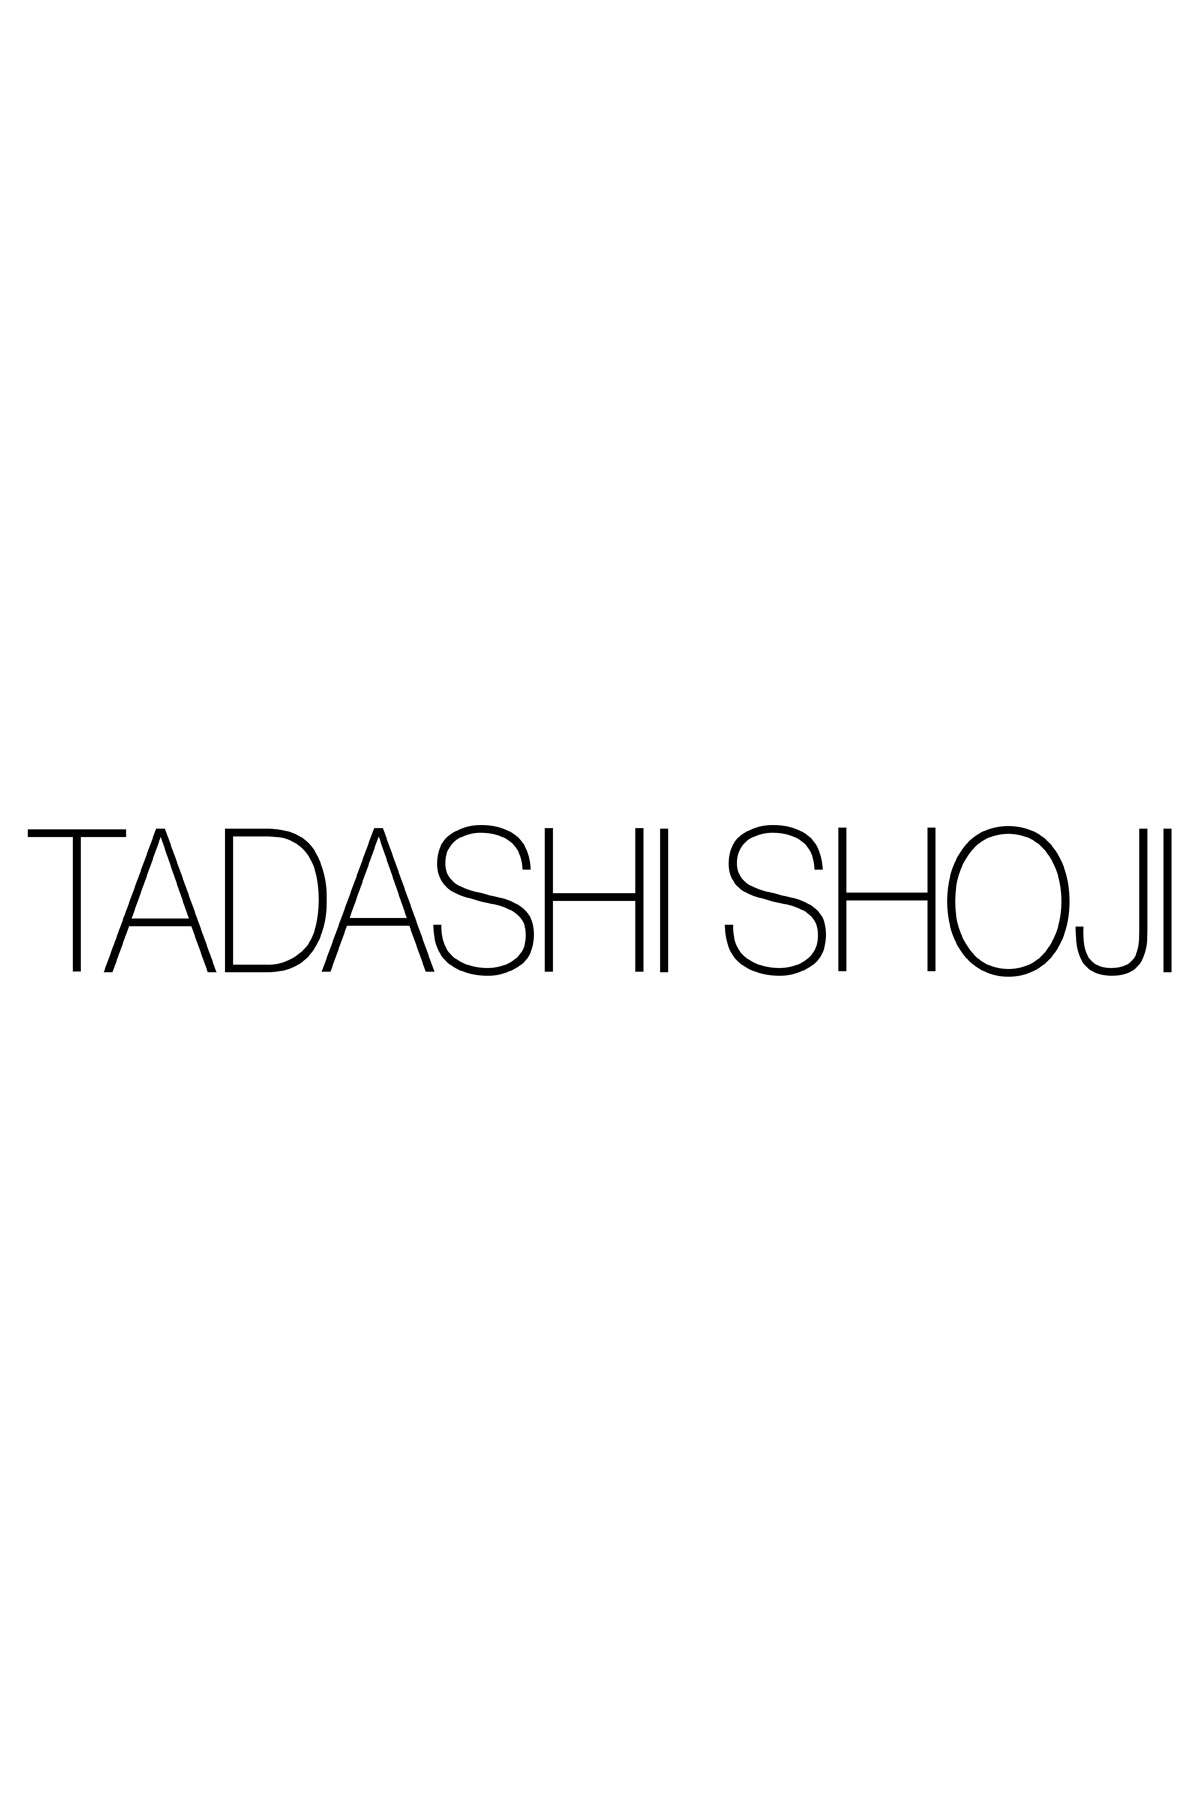 Tadashi Shoji - Blouson Waist Paillette Embroidered Lace Dress - Detail